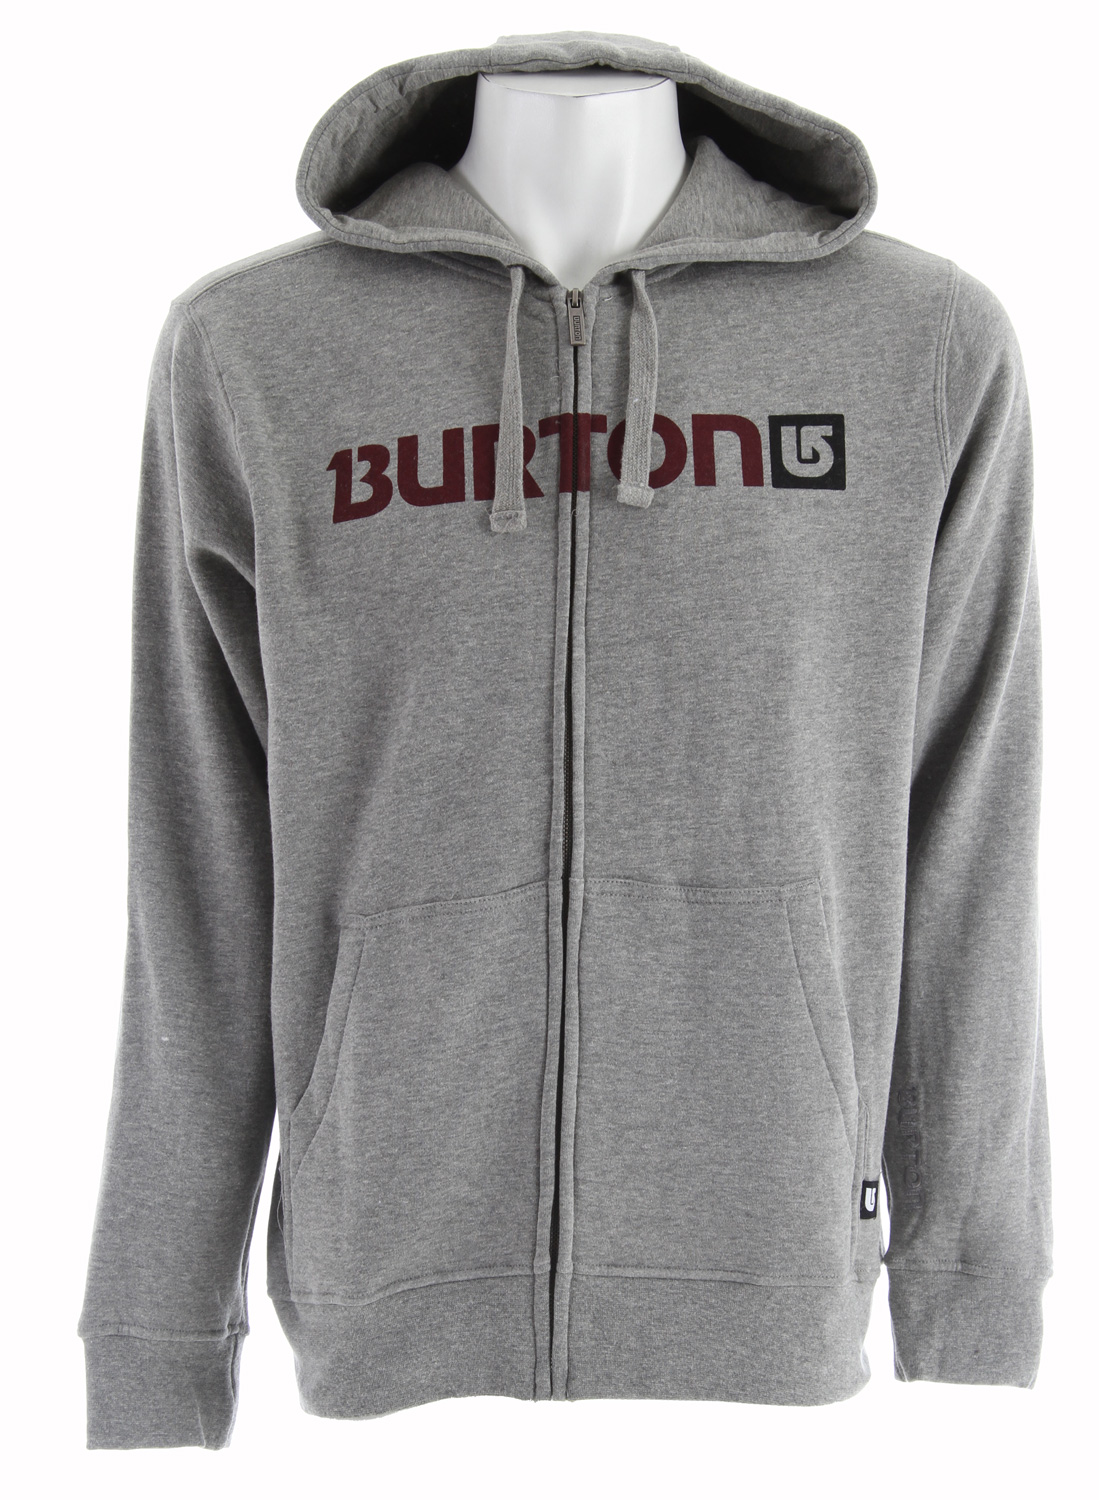 Snowboard Key Features of the Burton Logo Horizontal Hoodie: 80% Cotton/20% Polyester, 300G Fleece Kangaroo Hand Warmer Pocket w/Interior Media Stash Signature Fit Hidden Side Seam Stash Pocket Word Marker Logo Print on Chest S-XL - $36.95